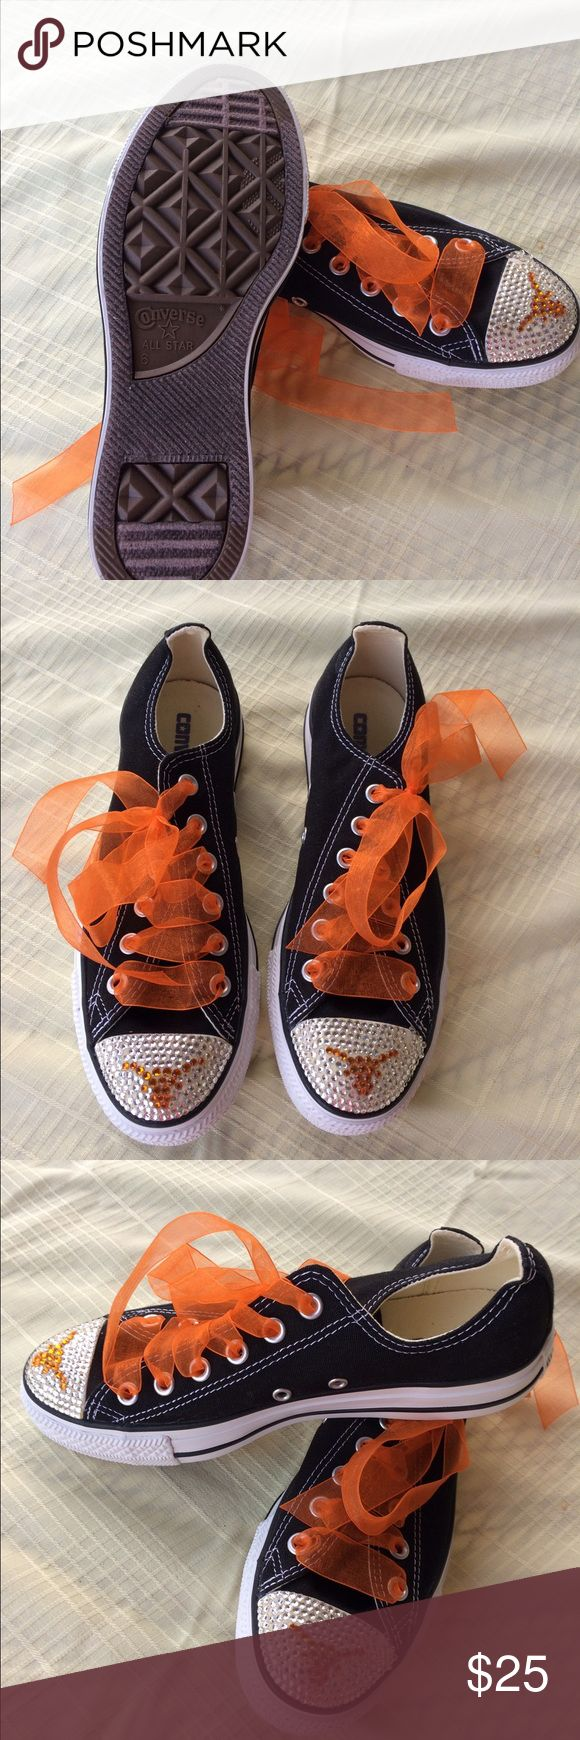 Decorated Converse tennis shoes Decorated with the longhorn logo and bedazzled along with orange shoe strings to match Converse Shoes Sneakers